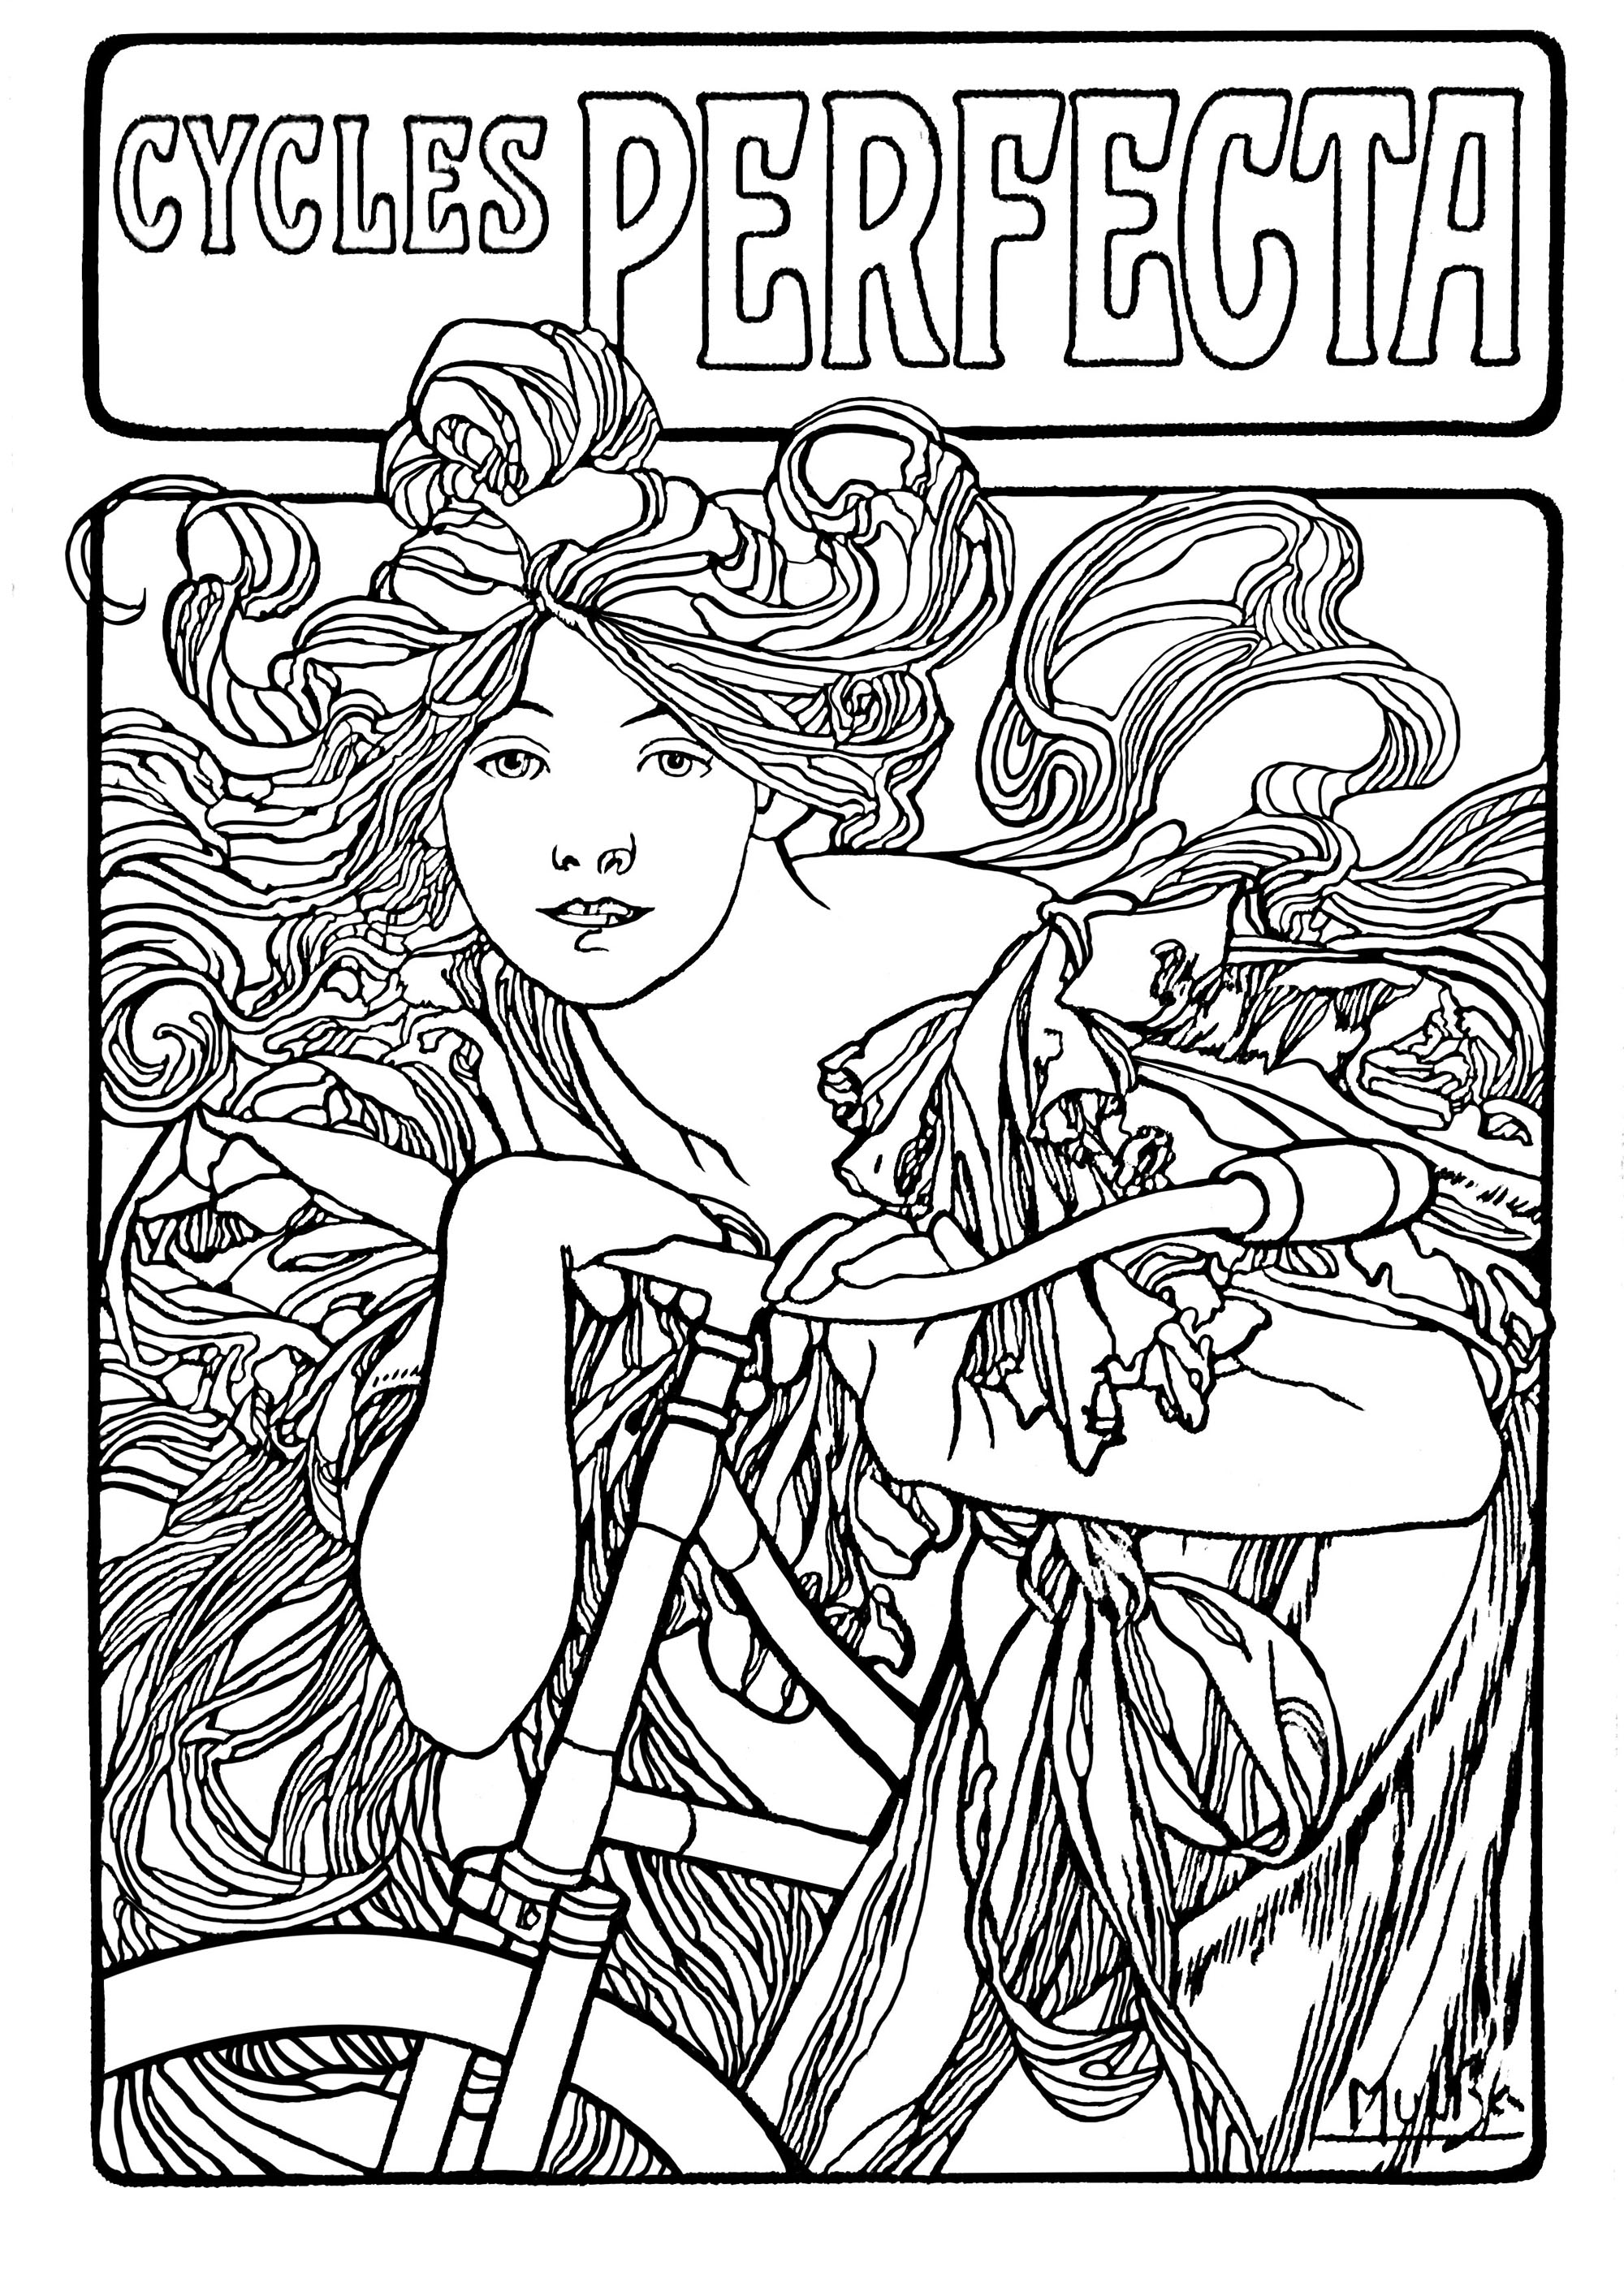 Cycles perfecta alfons mucha - Art nouveau - Coloriages ...